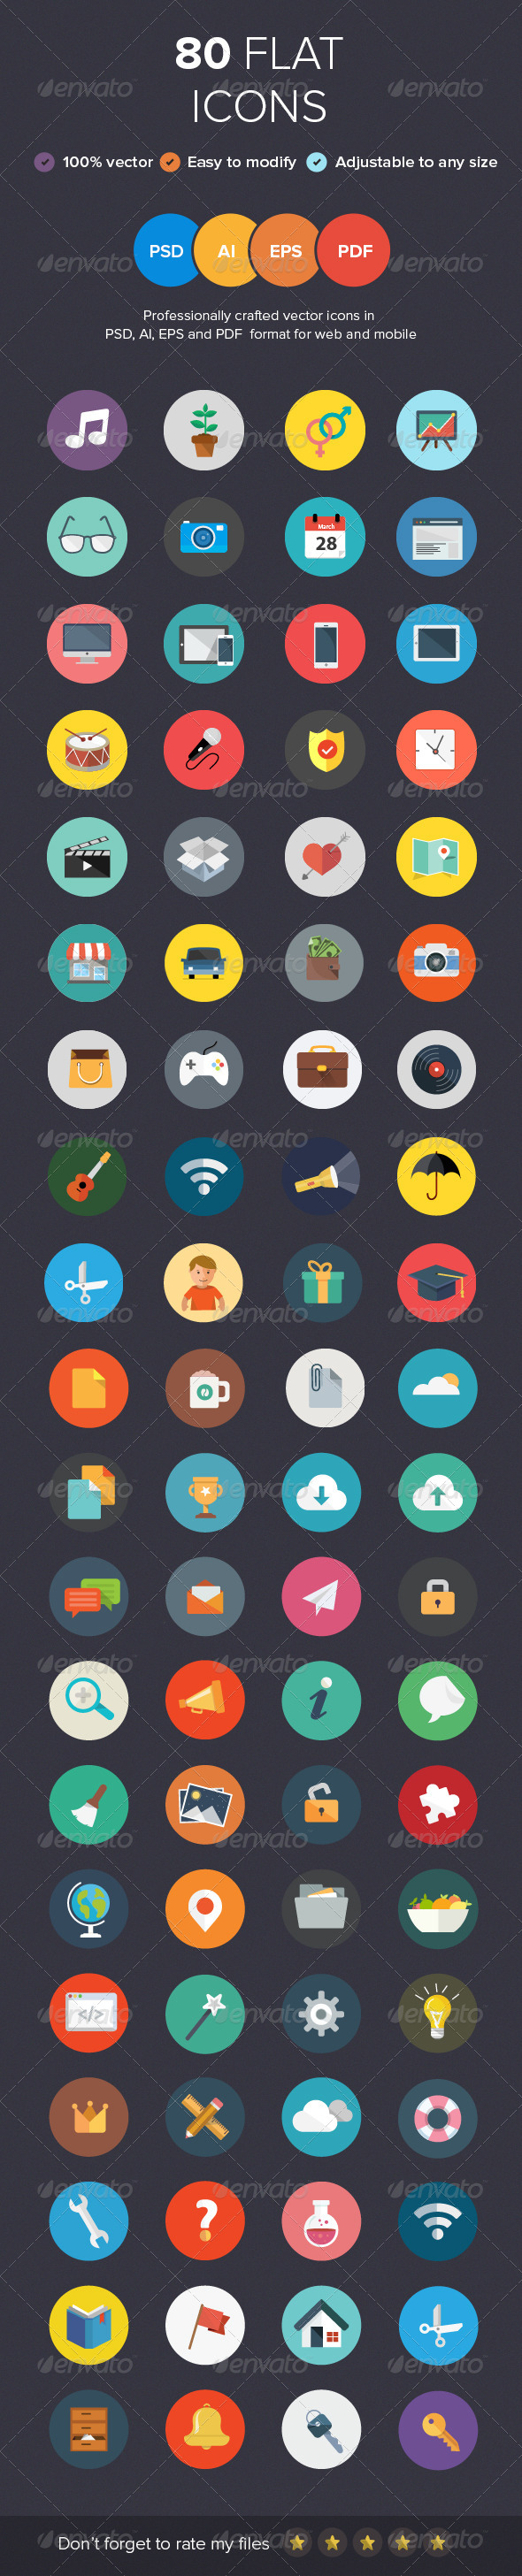 GraphicRiver 80 Flat Icons 5924400